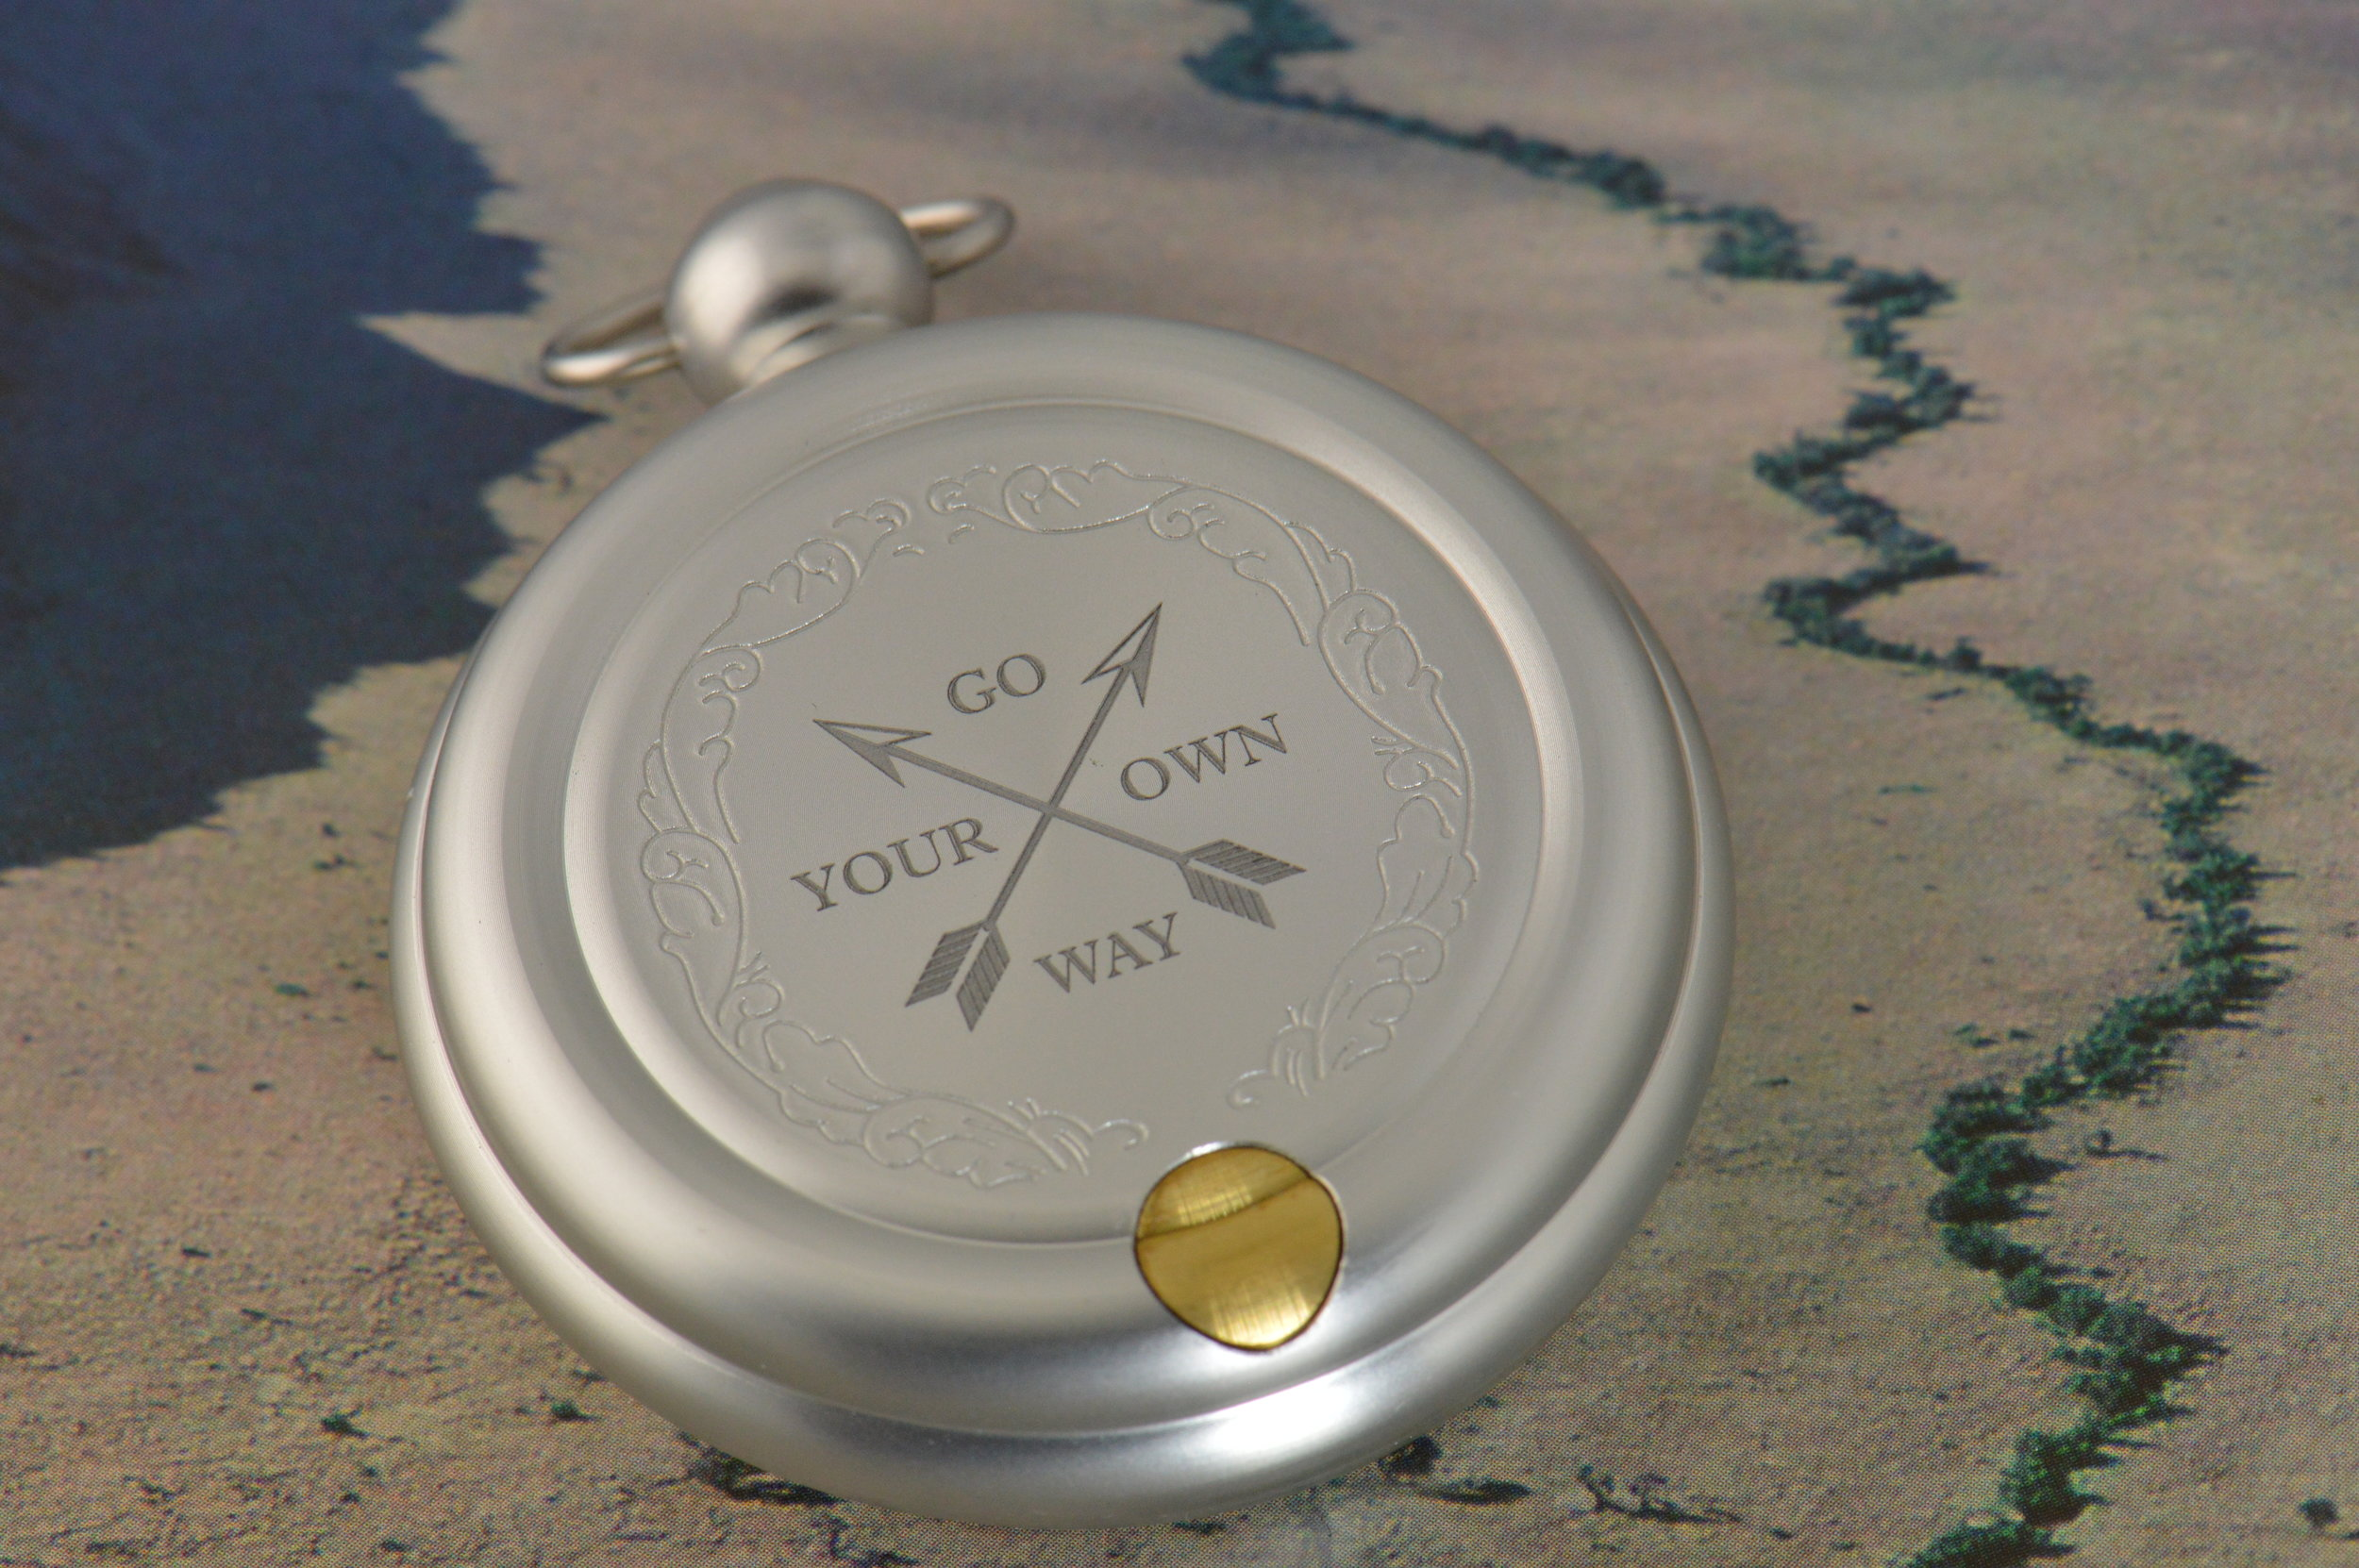 Personalizing a client's compass.